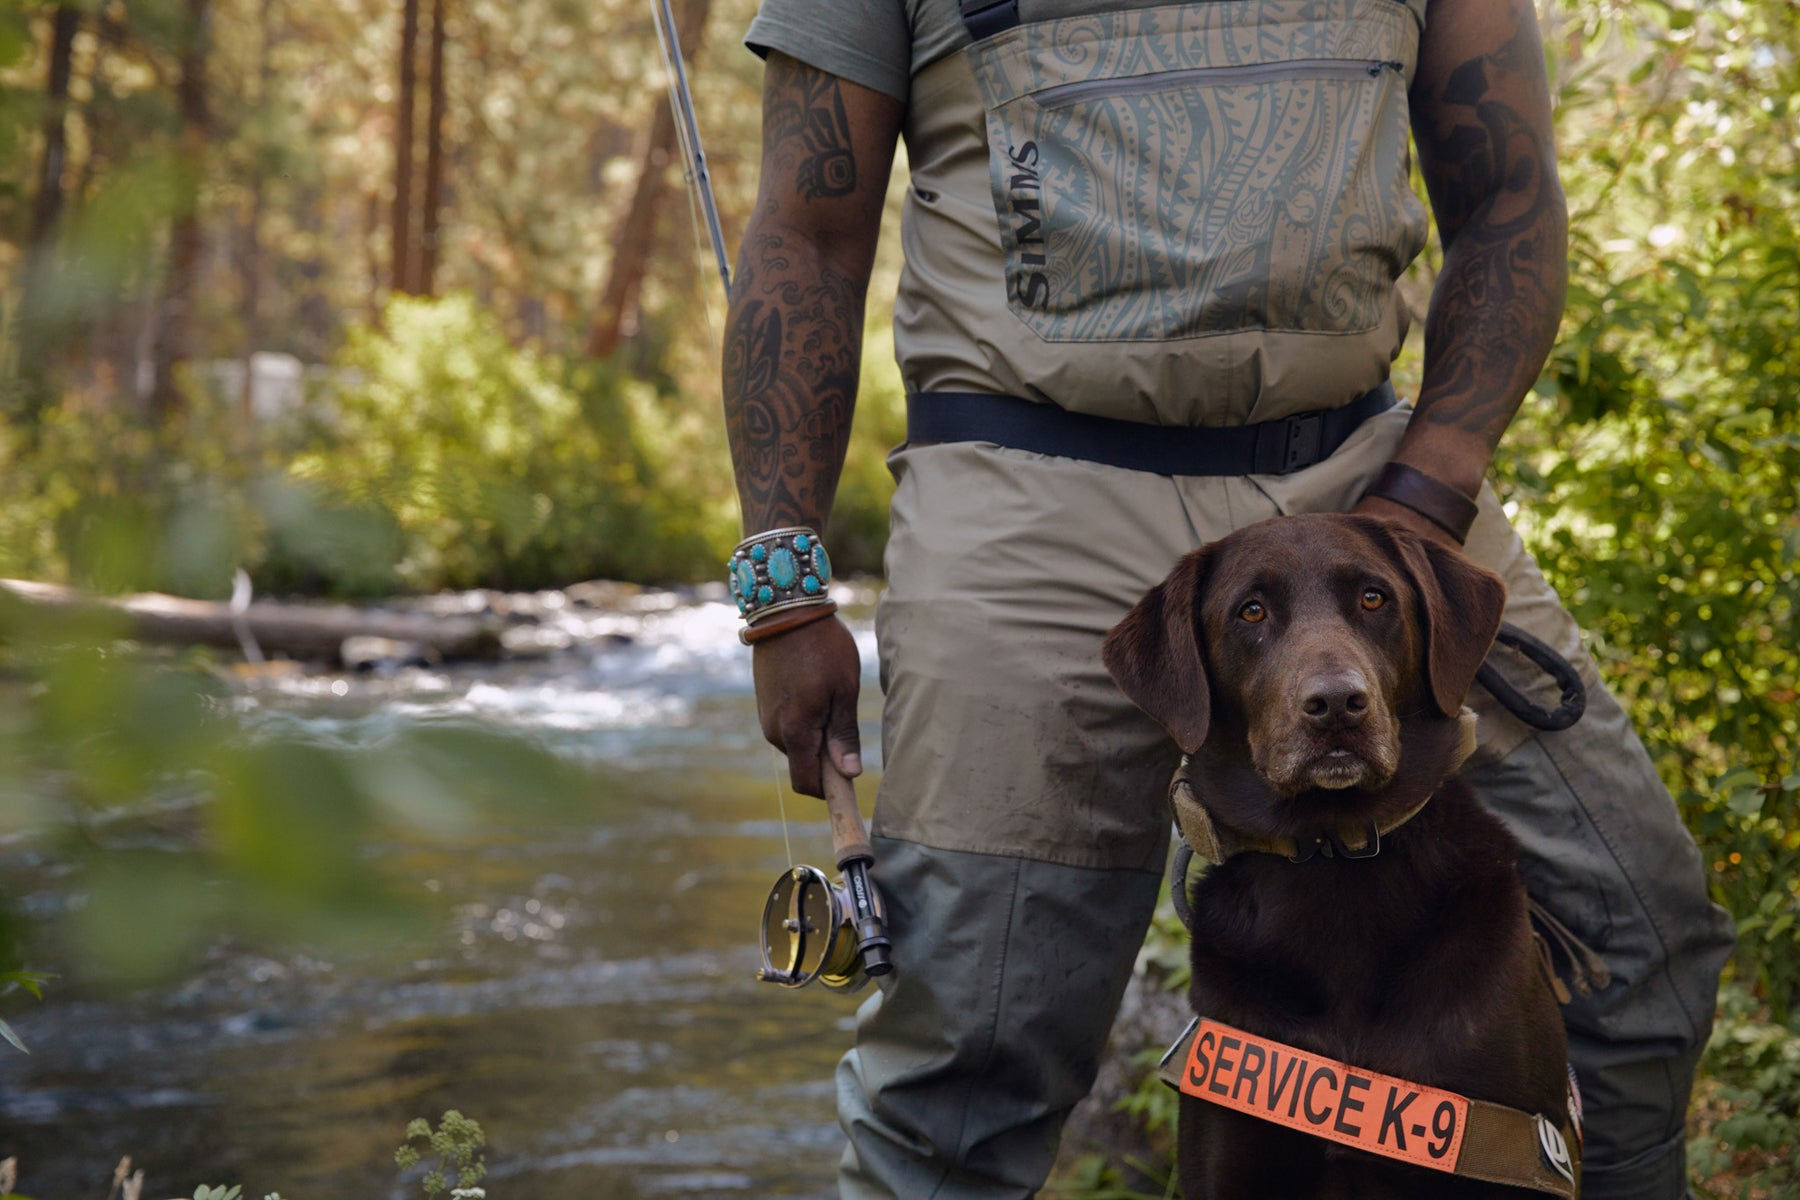 Chad in fly fishing gear and dog axe in service dog vest pose by the river close up.